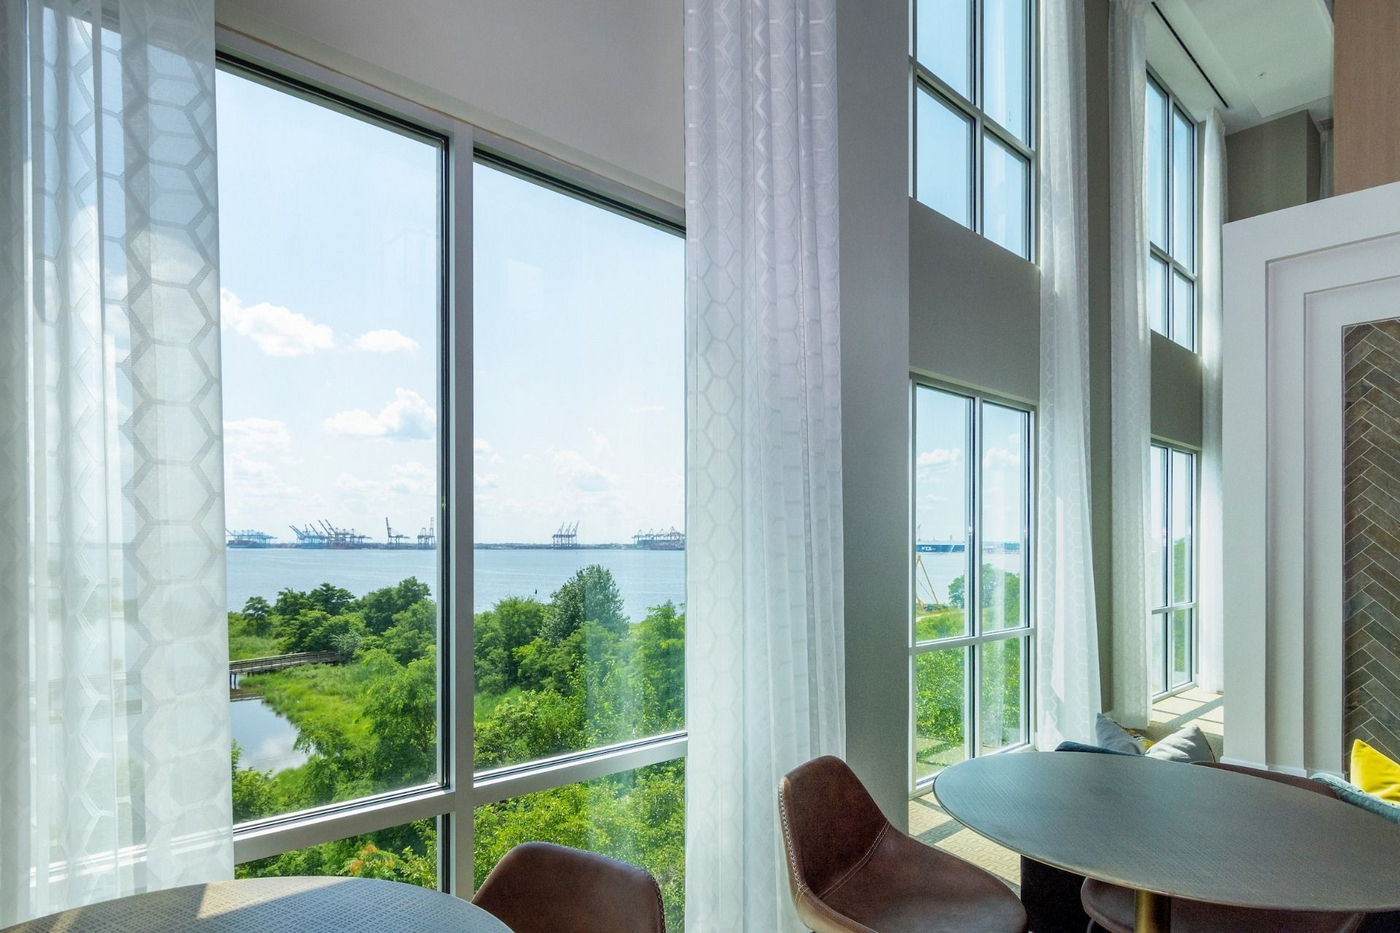 Interior image of club house windows over looking river